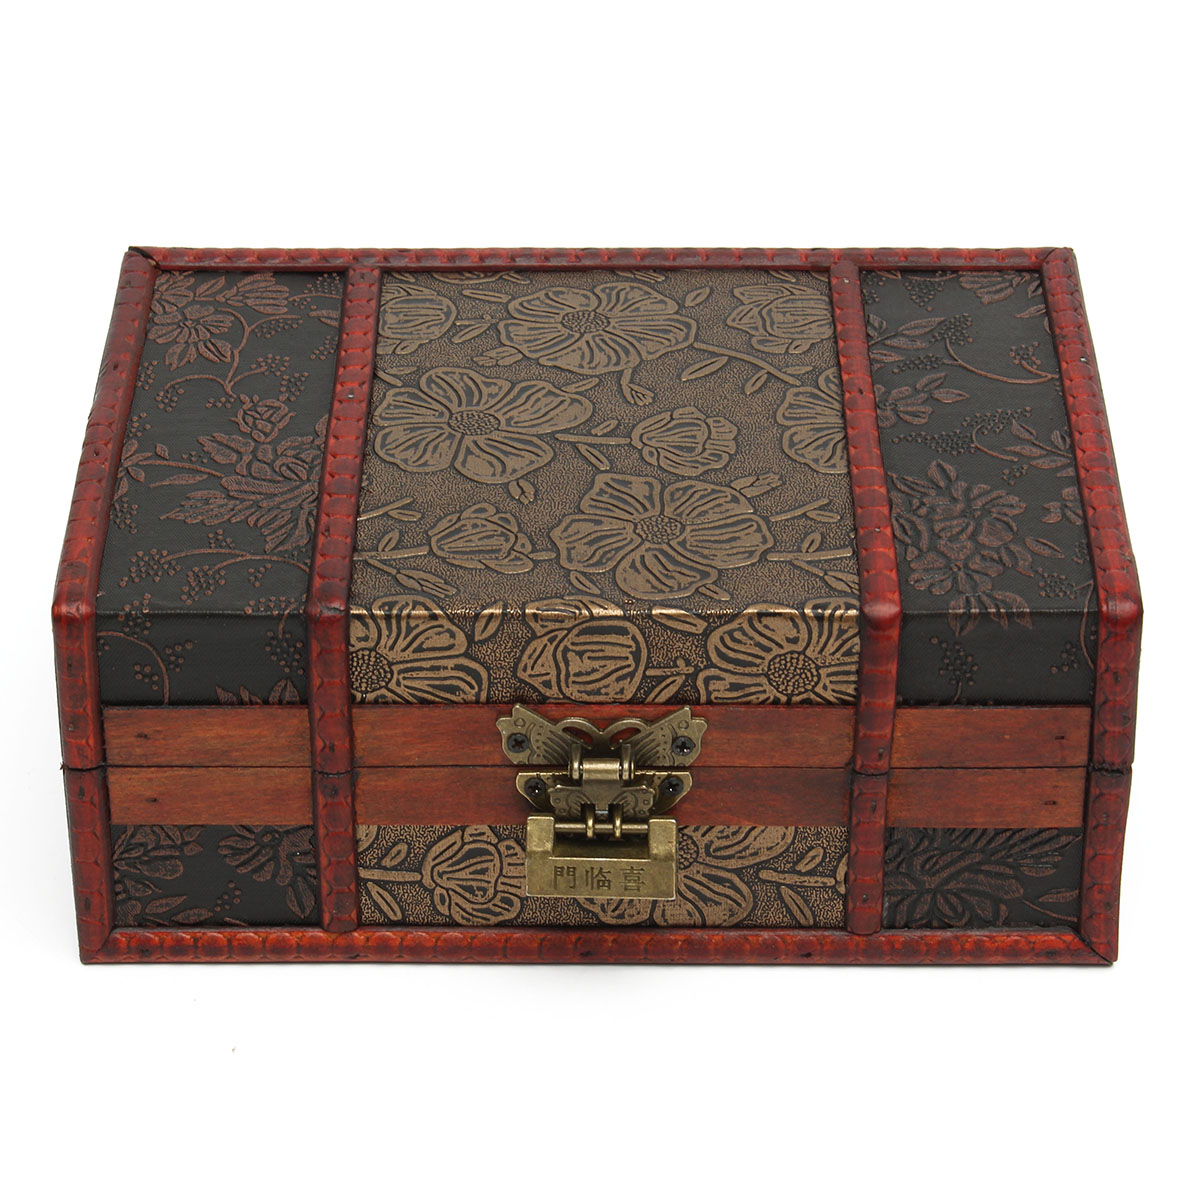 Buy Red Vintage Retro Flower Carved Wooden Jewelry Gift Collect Box Case Holder